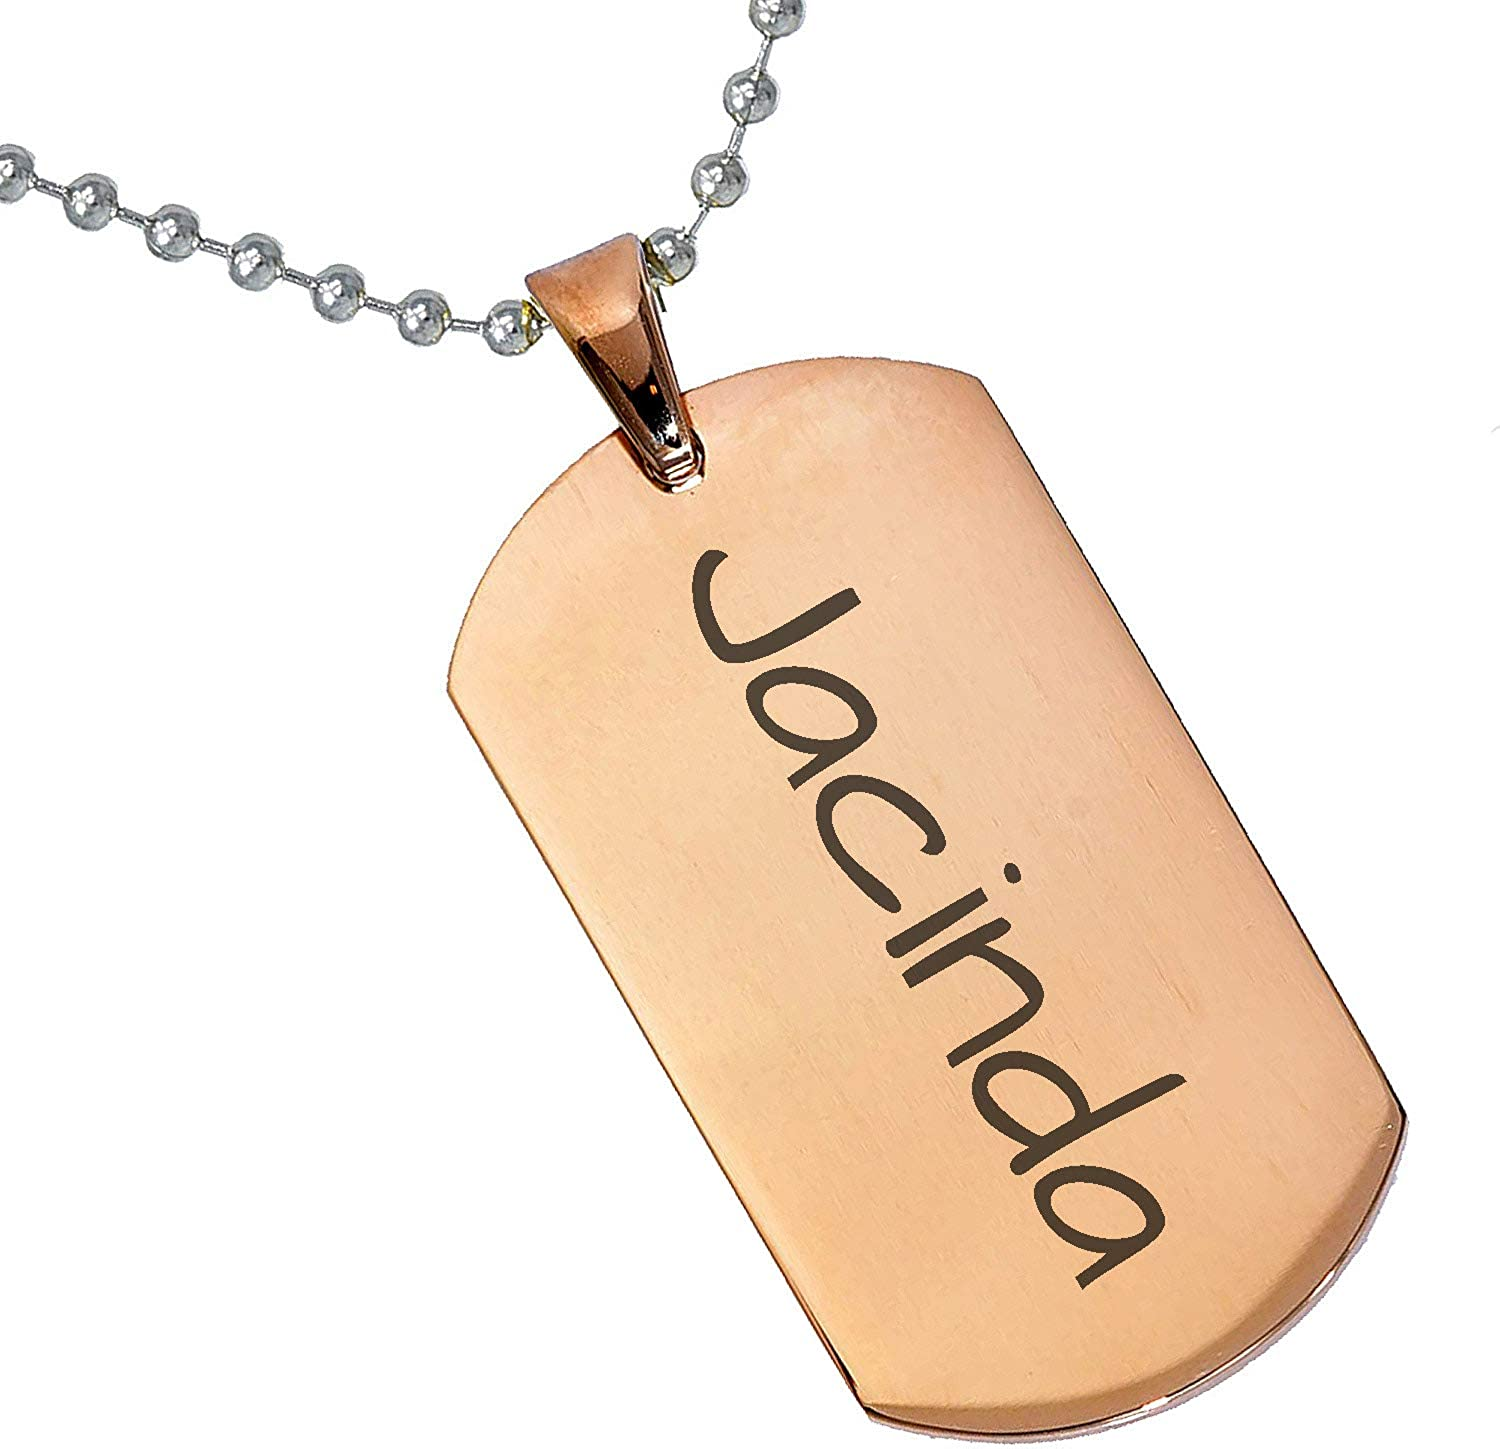 Stainless Steel Silver Gold Black Rose Gold Color Baby Name Jacinda Engraved Personalized Gifts For Son Daughter Boyfriend Girlfriend Initial Customizable Pendant Necklace Dog Tags 24 Ball Chain